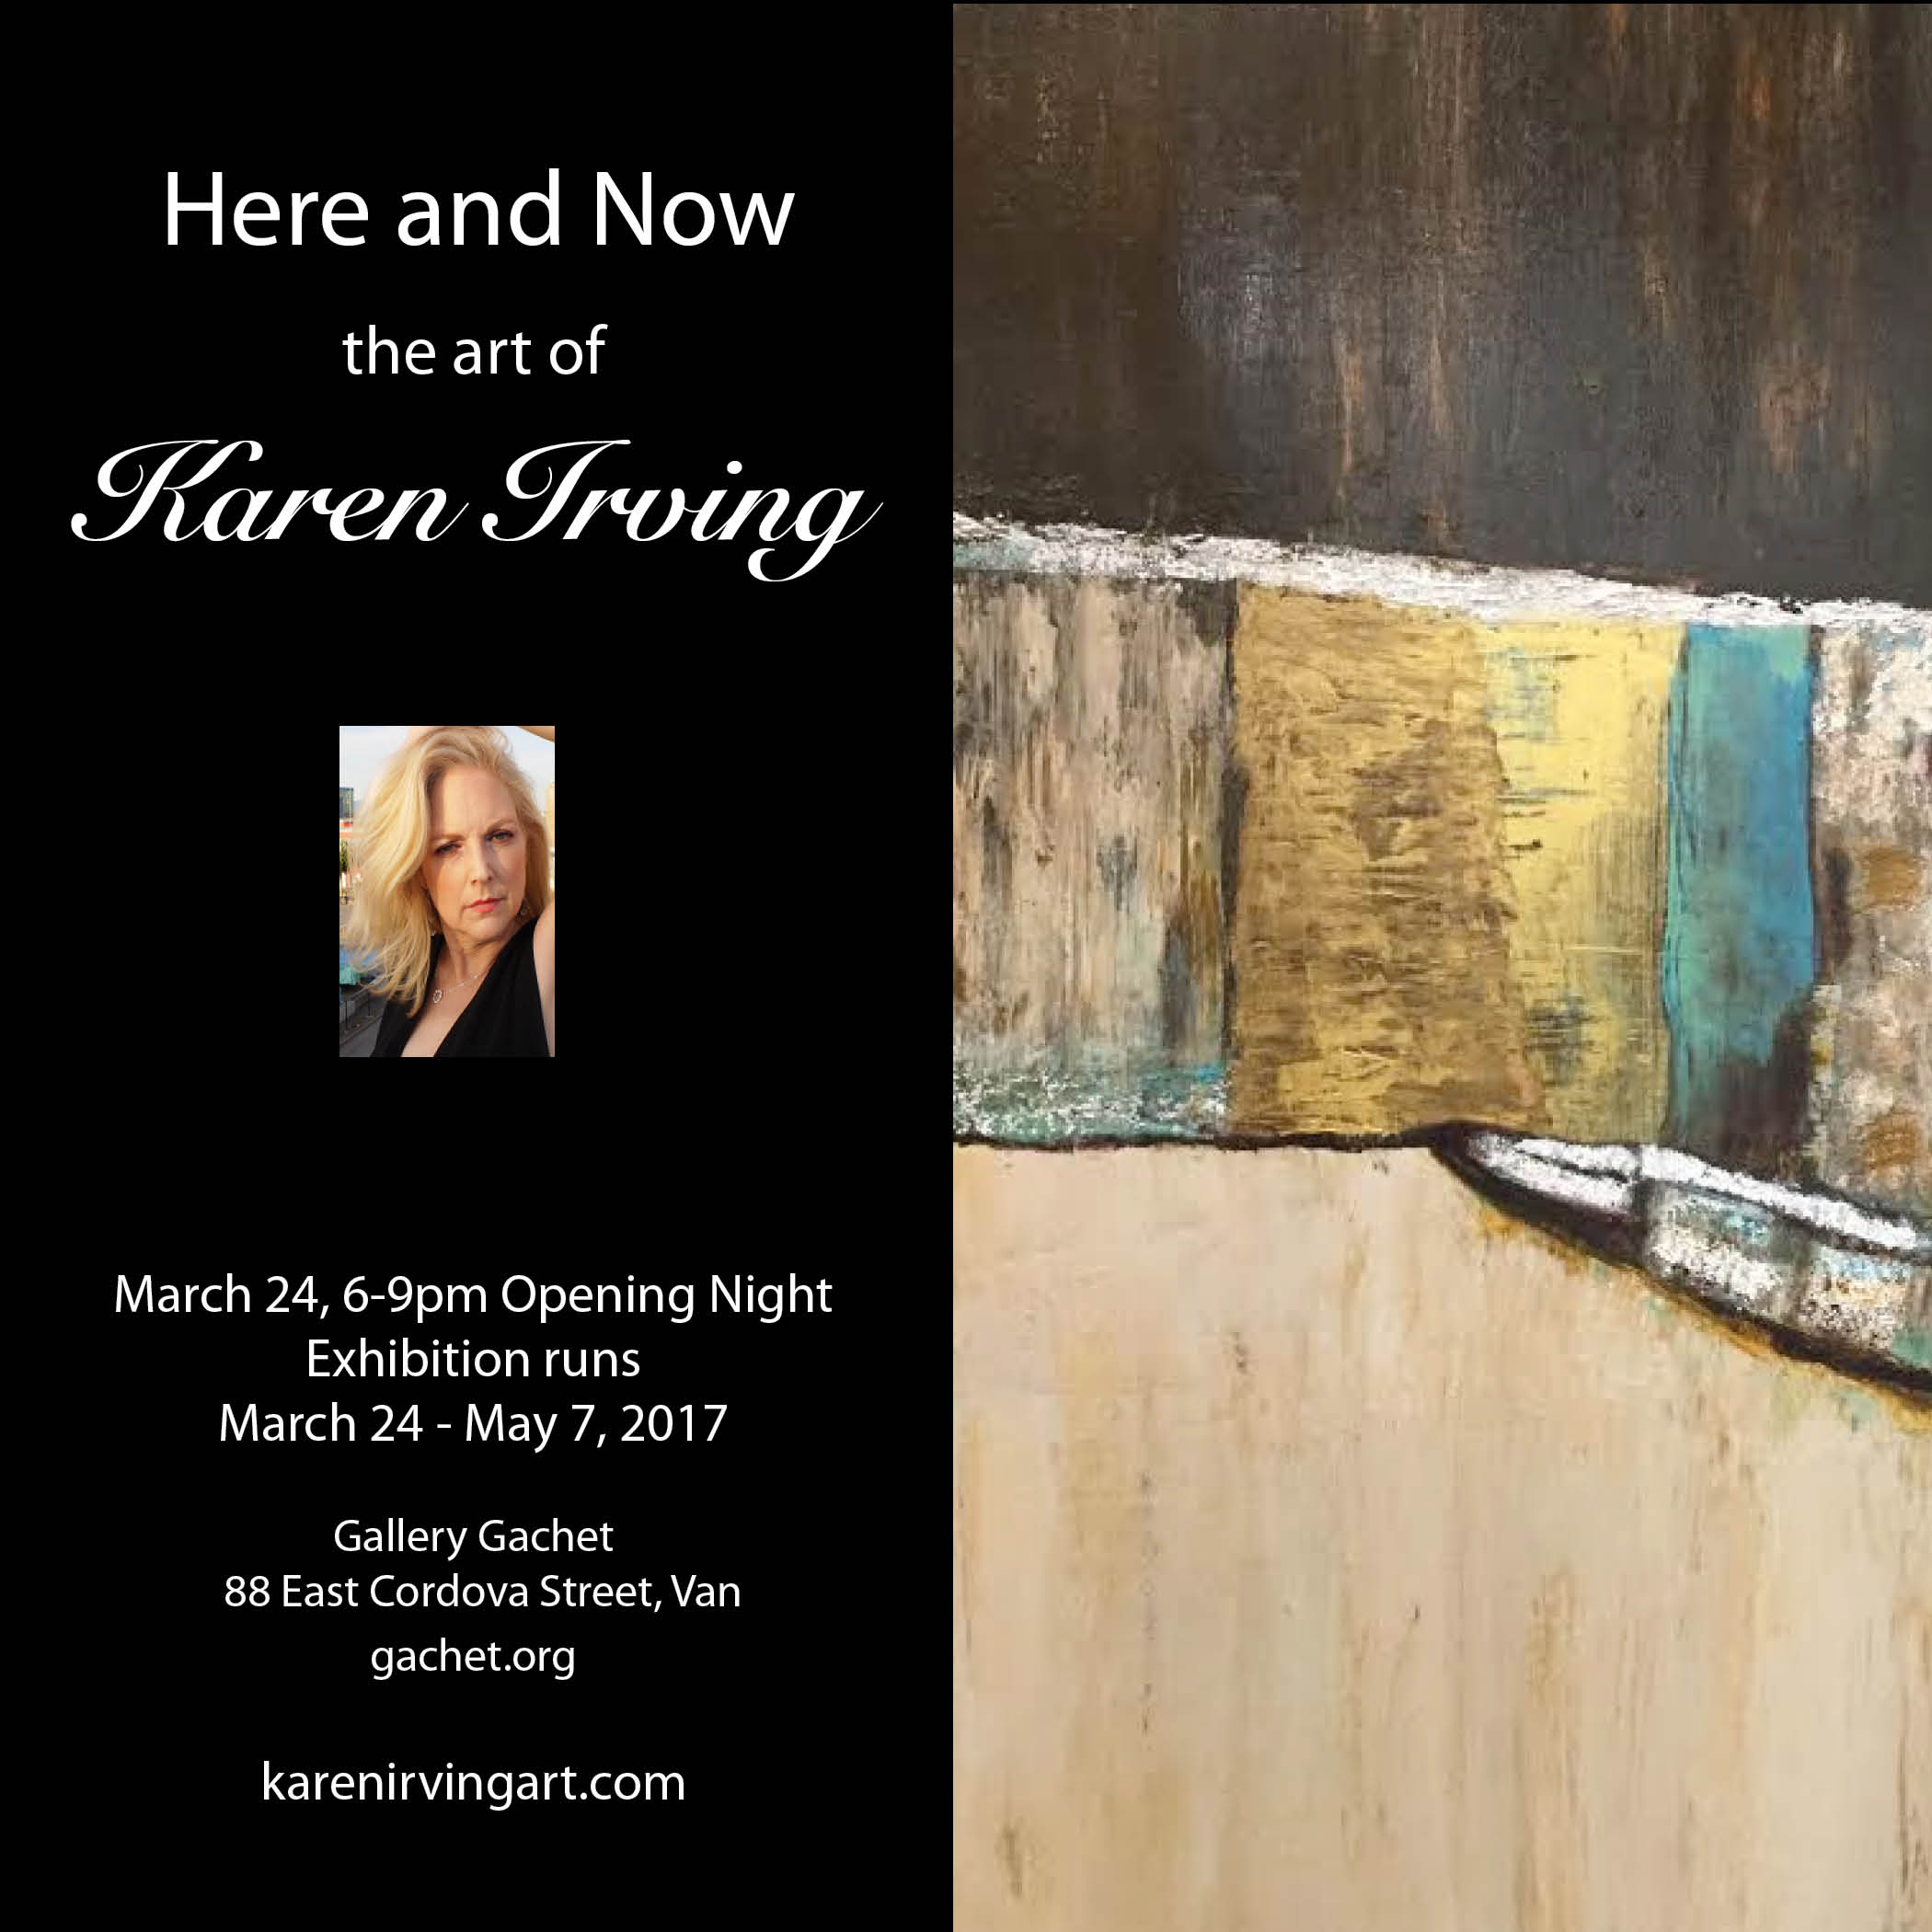 Here and Now: The Art of Karen Irving